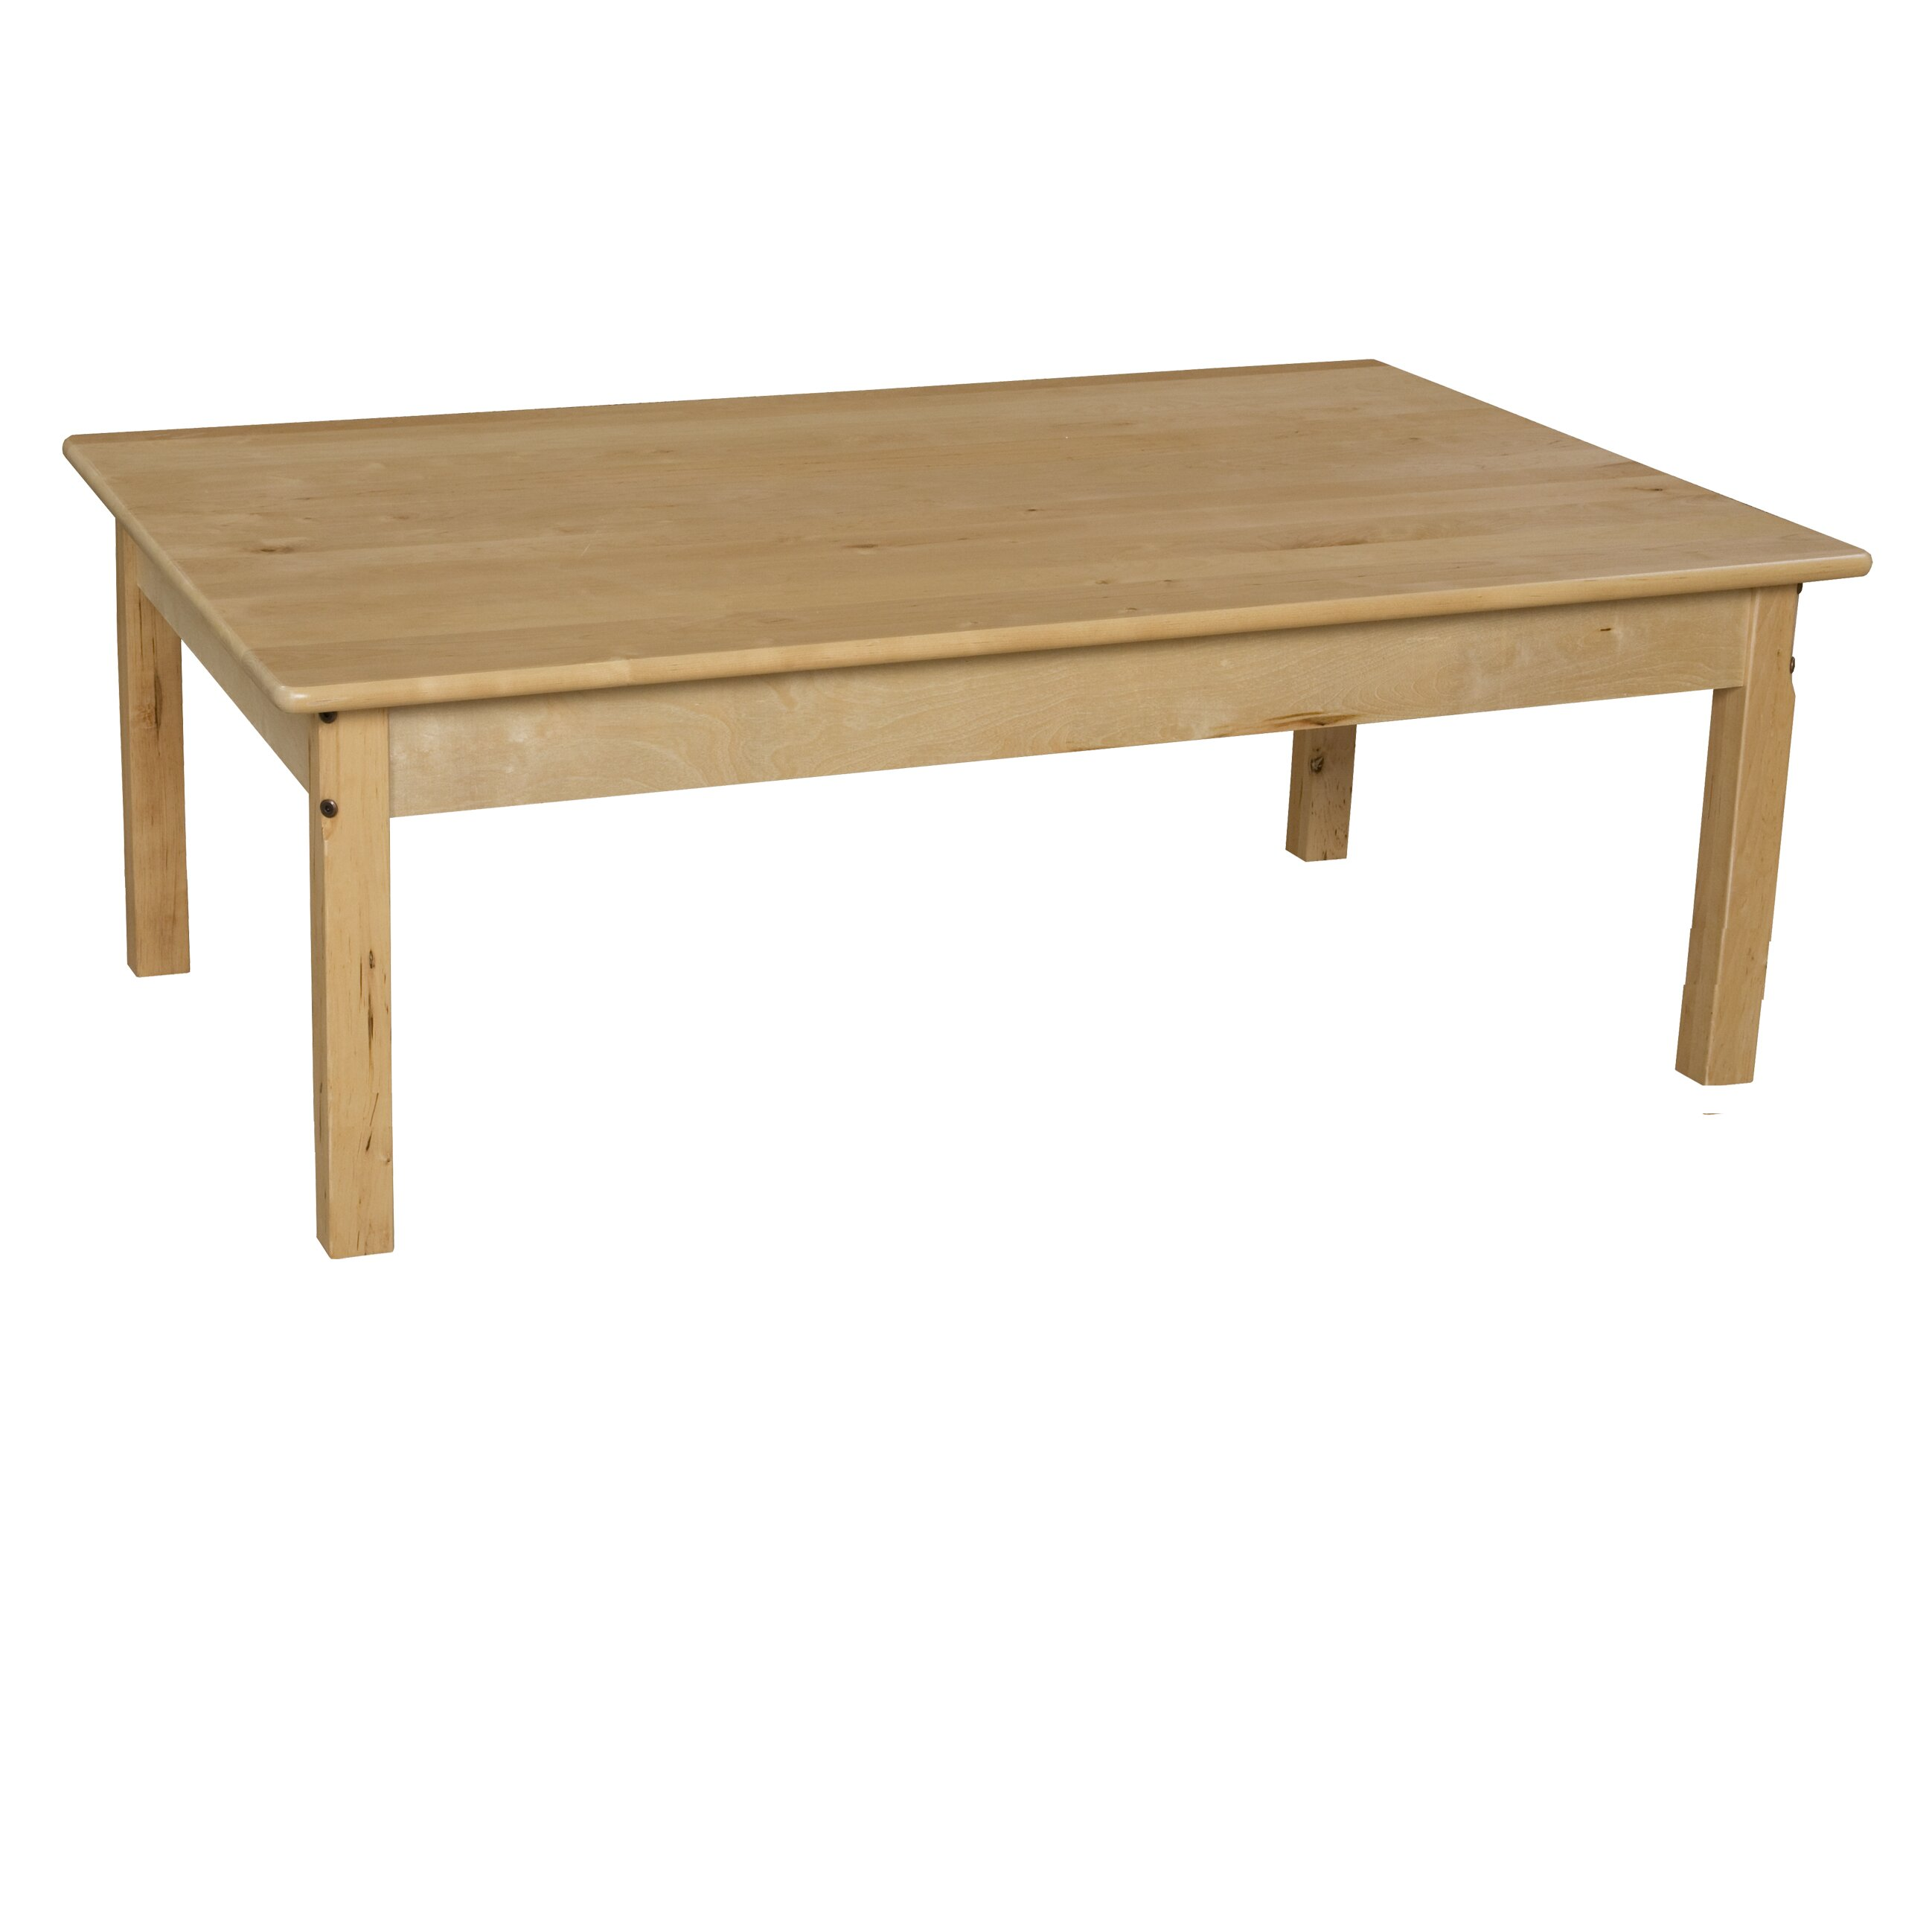 wood designs 30 x 48 rectangular activity table